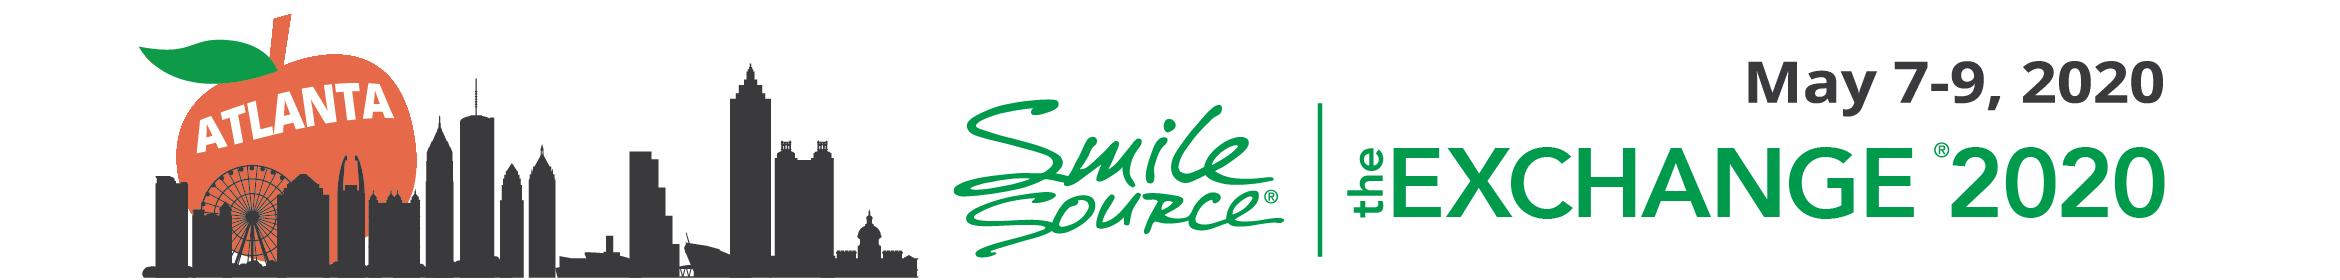 2019 SMILE SOURCE EXCHANGE  Main banner